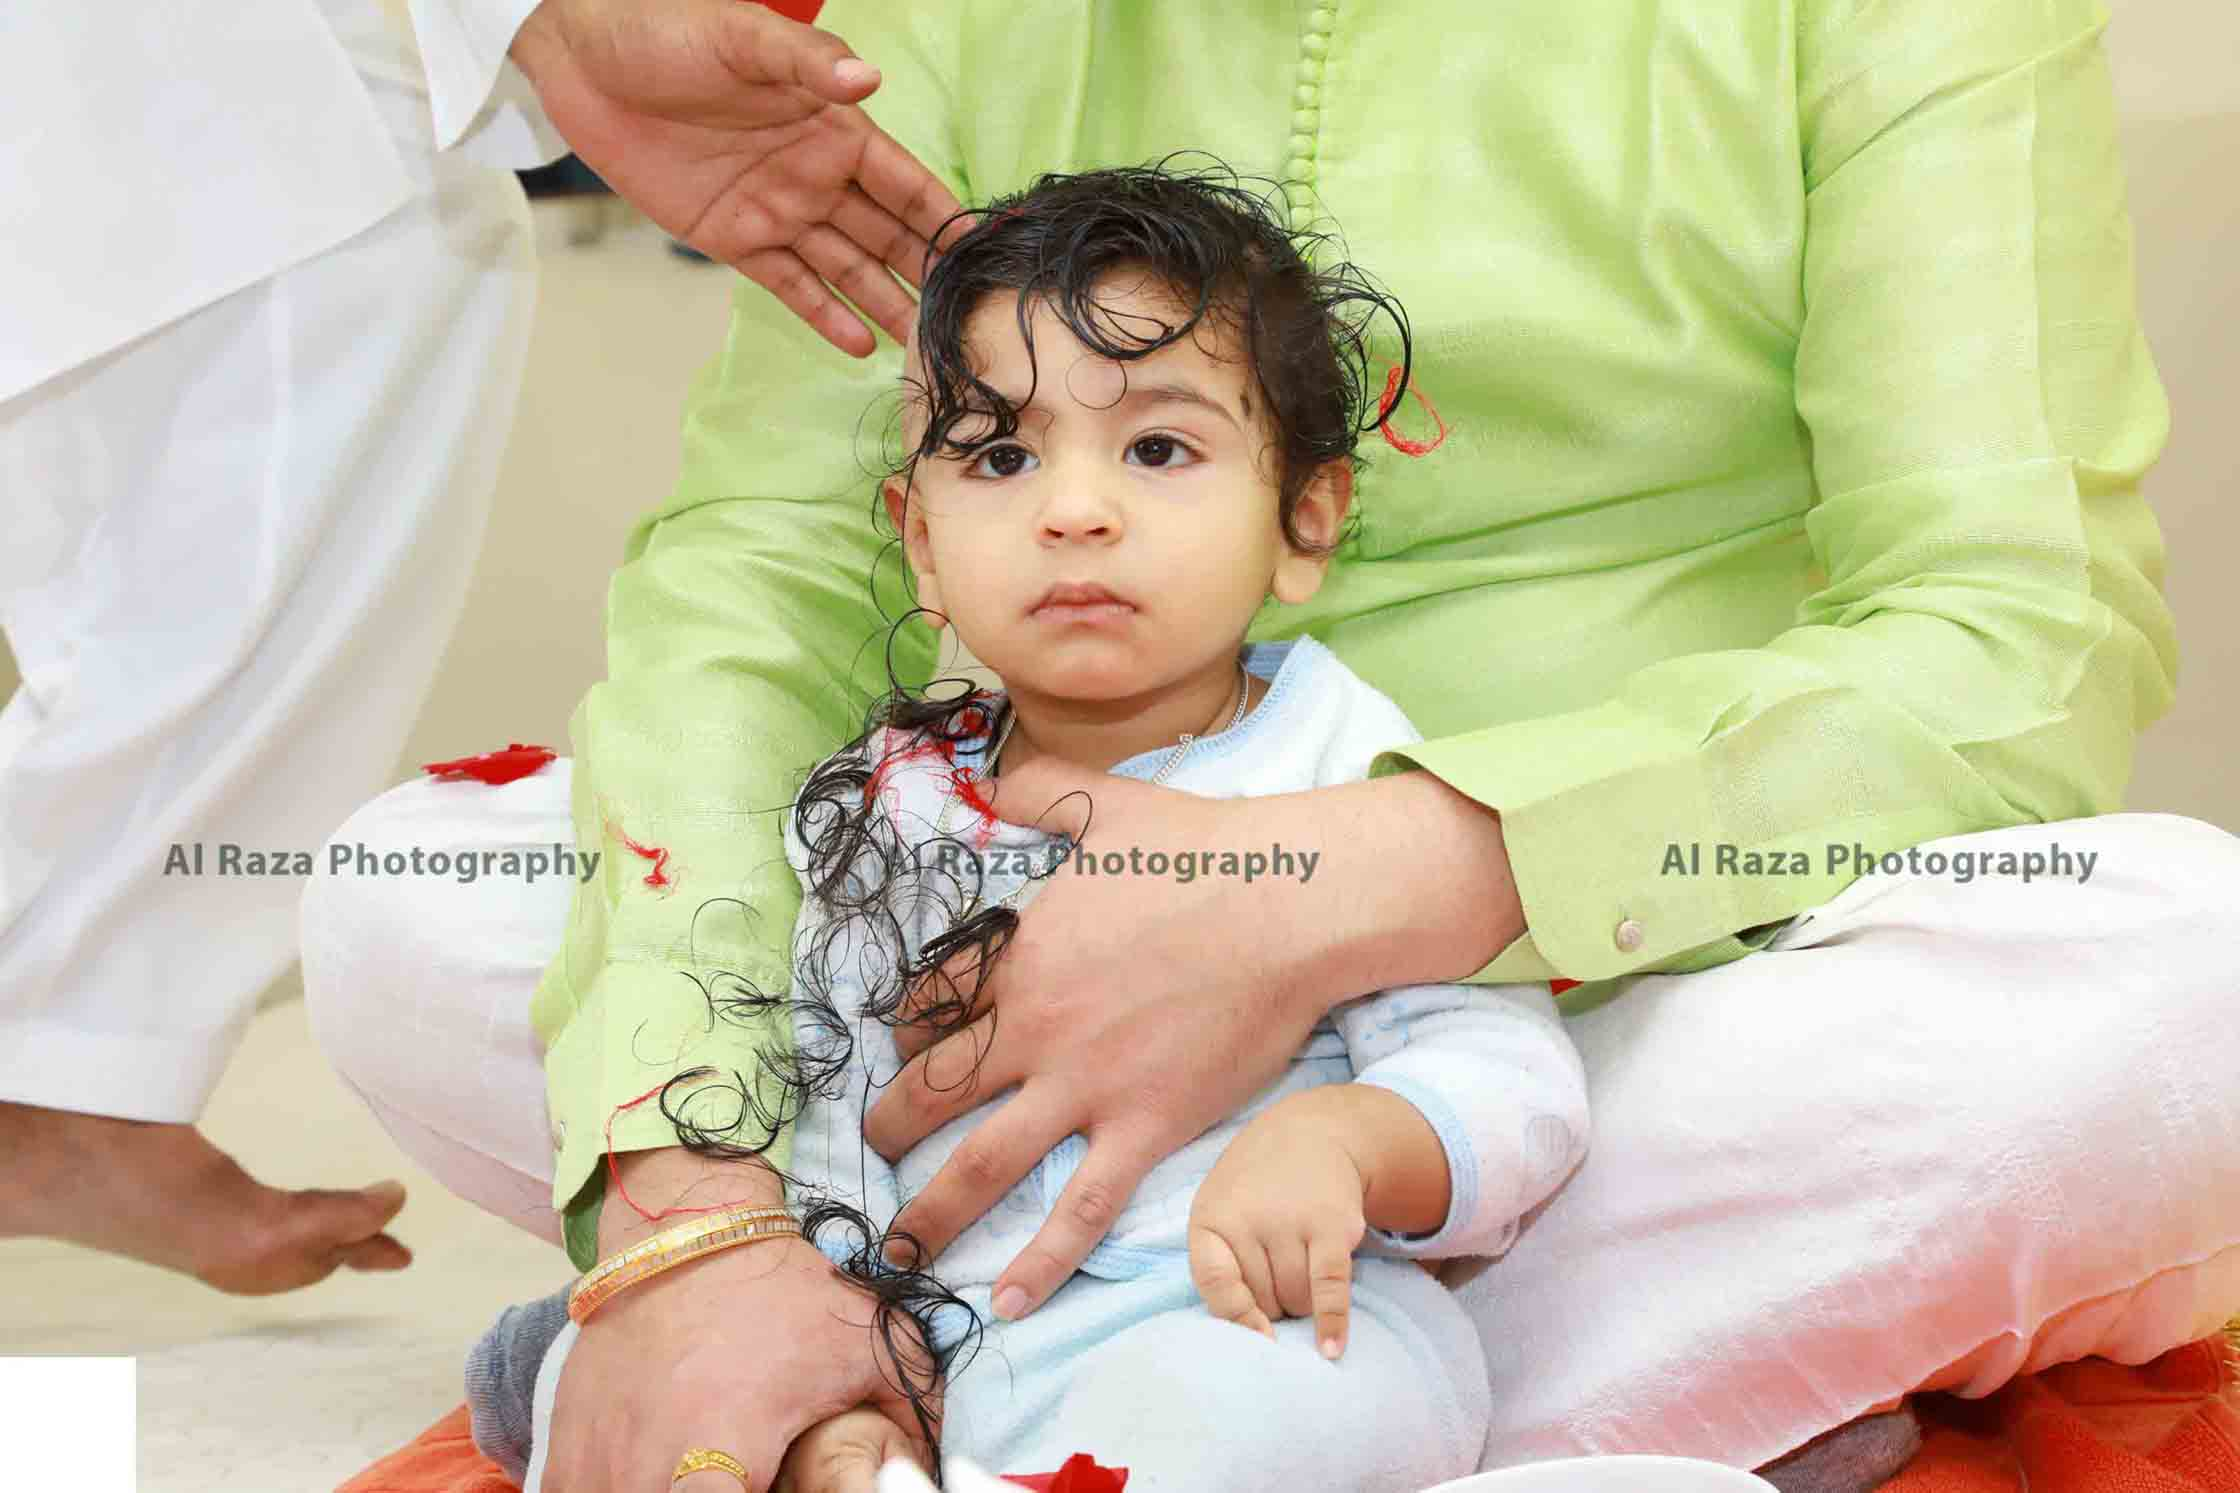 Child Photography in Qatar